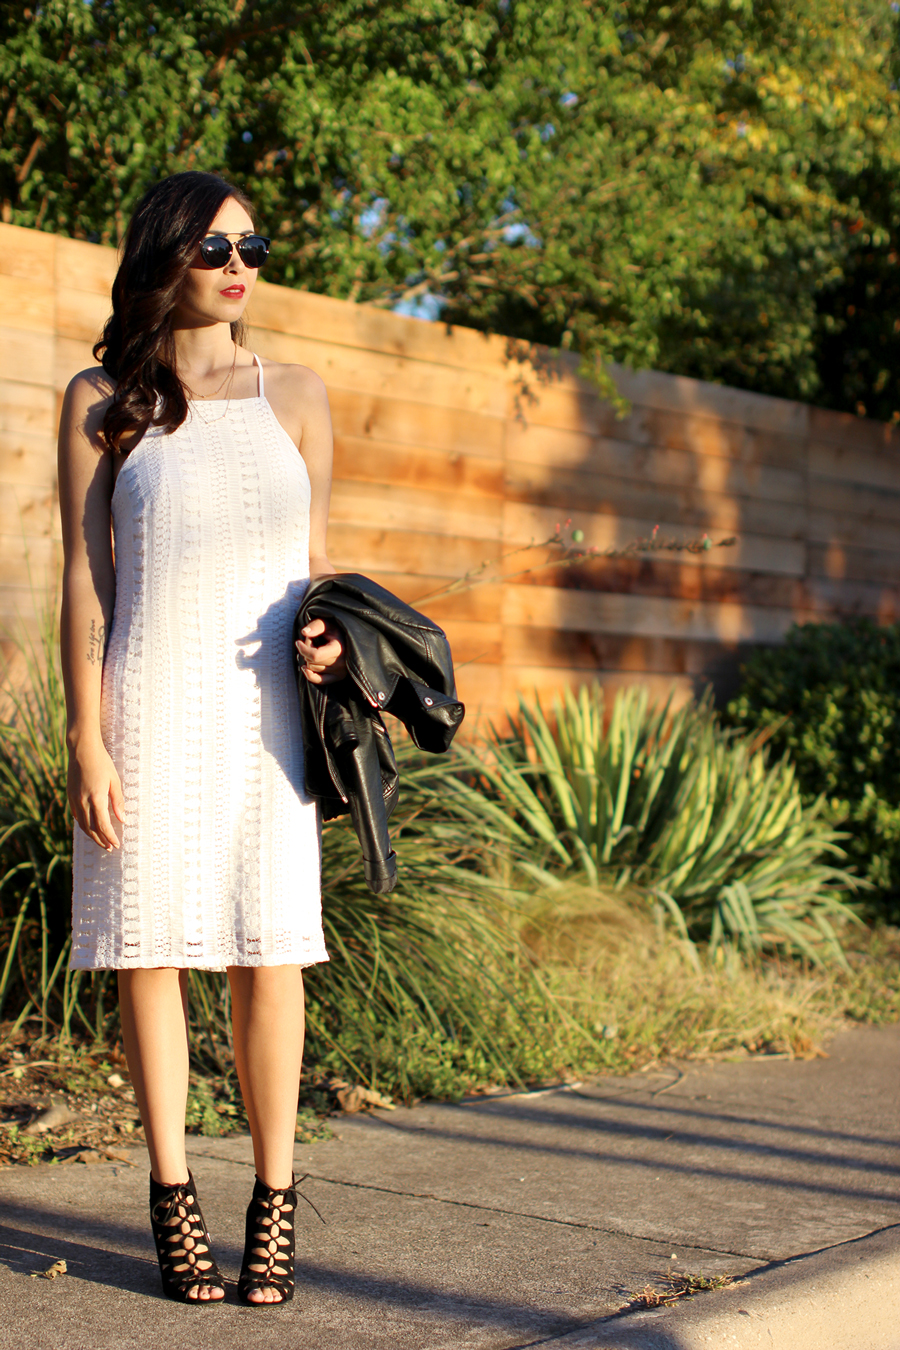 FIXIN-TO-THRILL-WHITE-HALTER-DRESS-STRAPPY-HEELS-LEATHER-TREND-FALL-OCTOBER-ATX-AUSTIN-STYLE-BLOG-FW15-TRENDY-CHIC-GLAM-TEXAS-2